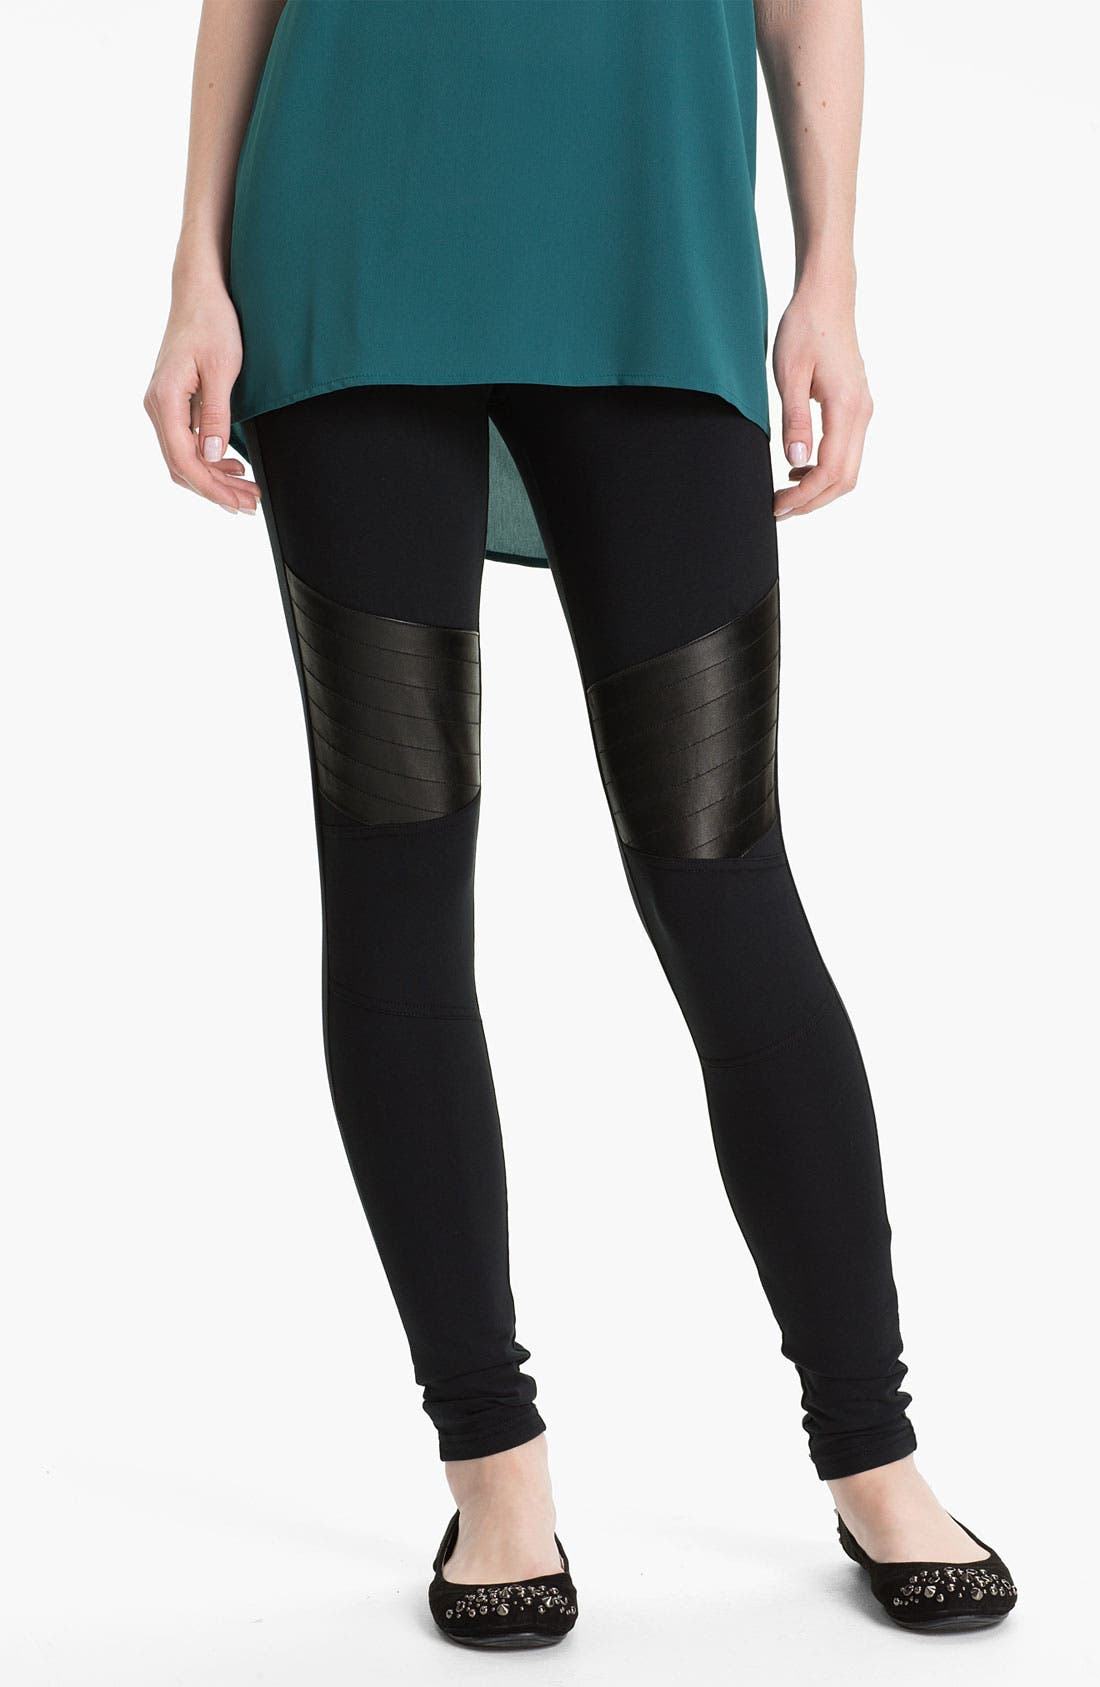 Alternate Image 1 Selected - BP. 'Motorbike' Faux Leather Panel Leggings (Juniors)